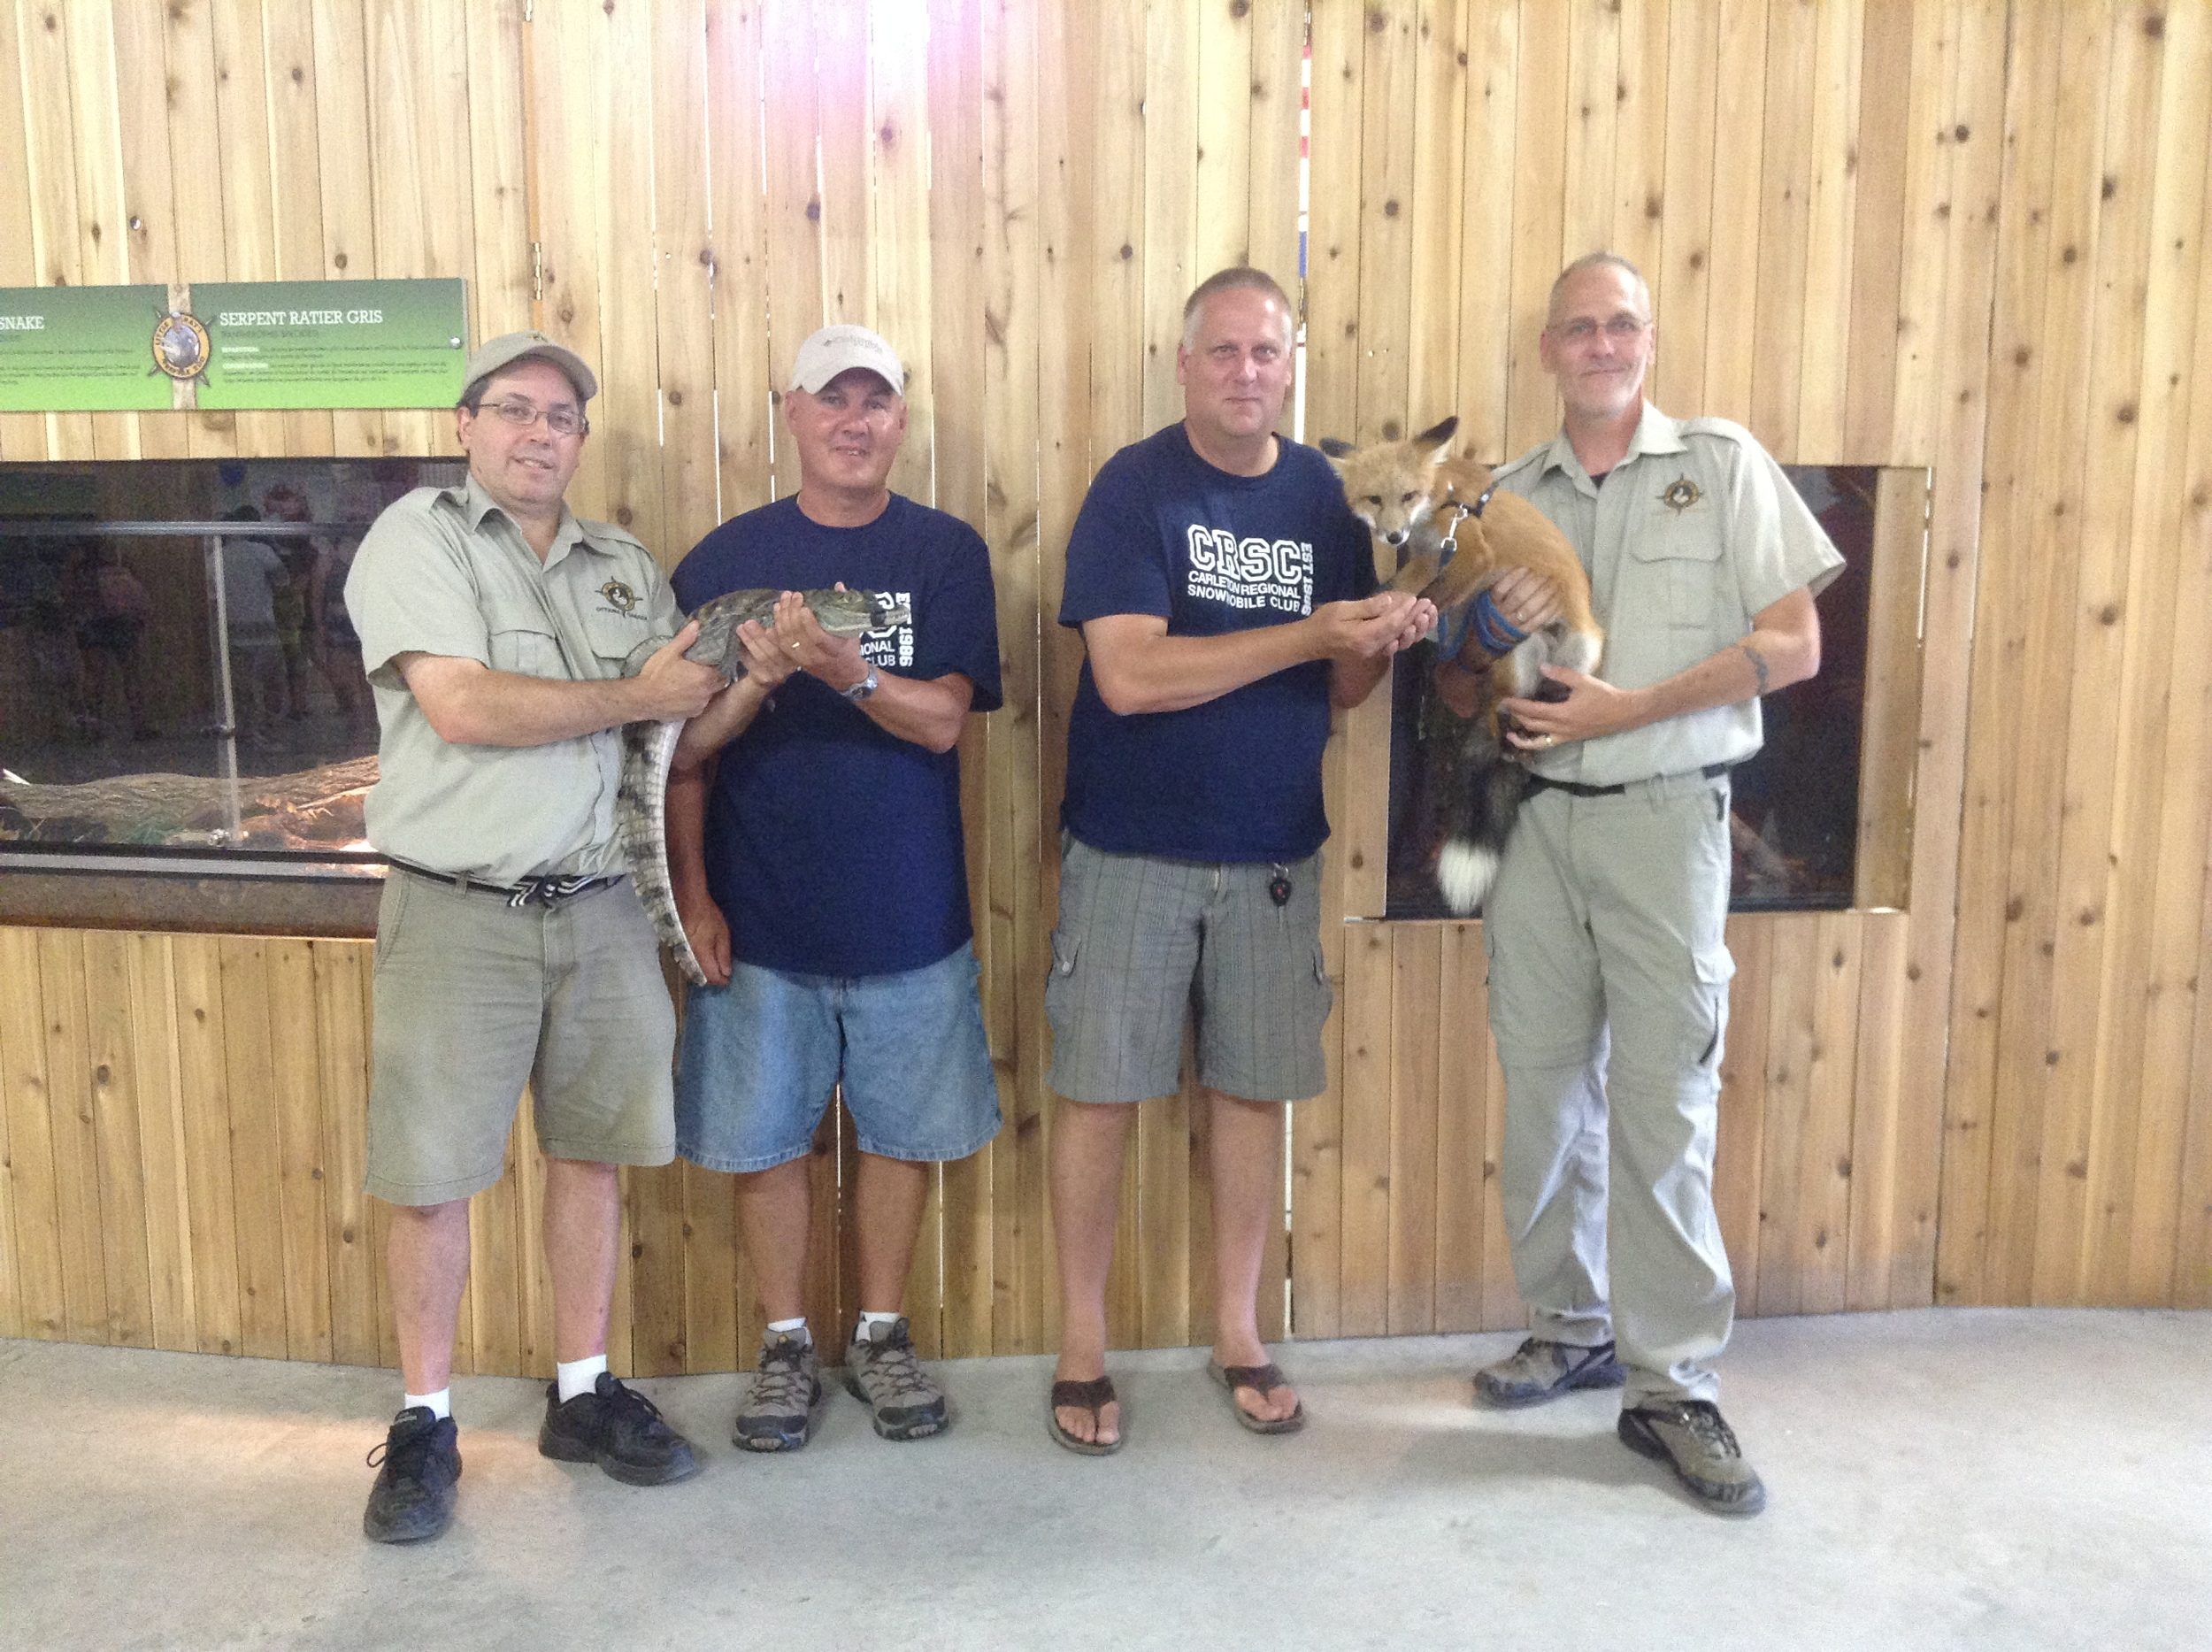 Little Ray's Reptile Zoo donated 3 Family Passes - pictured above (L-R) Michael, Rick, Dean and Kevin